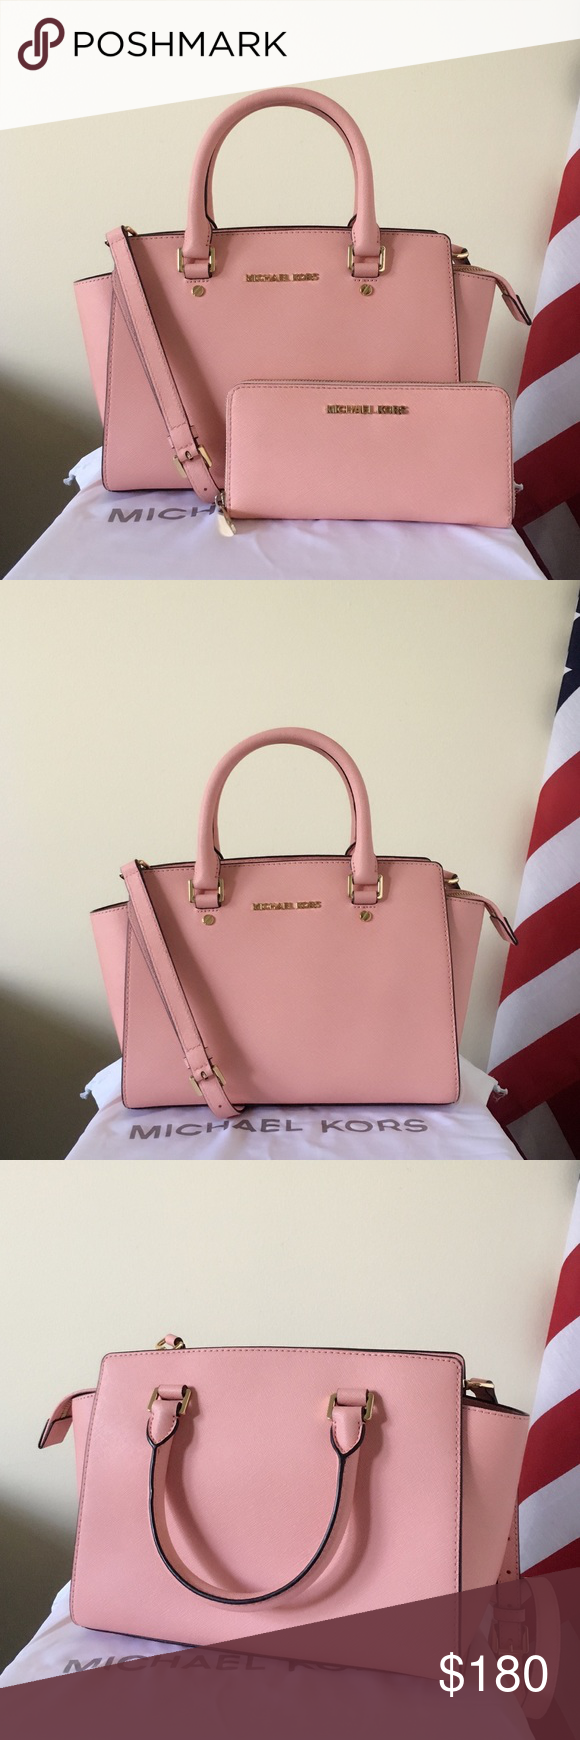 bee29f23b1a77e Michael Kors Selma Medium With Wallet Beautiful set! Pale pink Saffiano  leather with gold detailing! Lightly used! Authentic! The Selma is in medium  size, ...